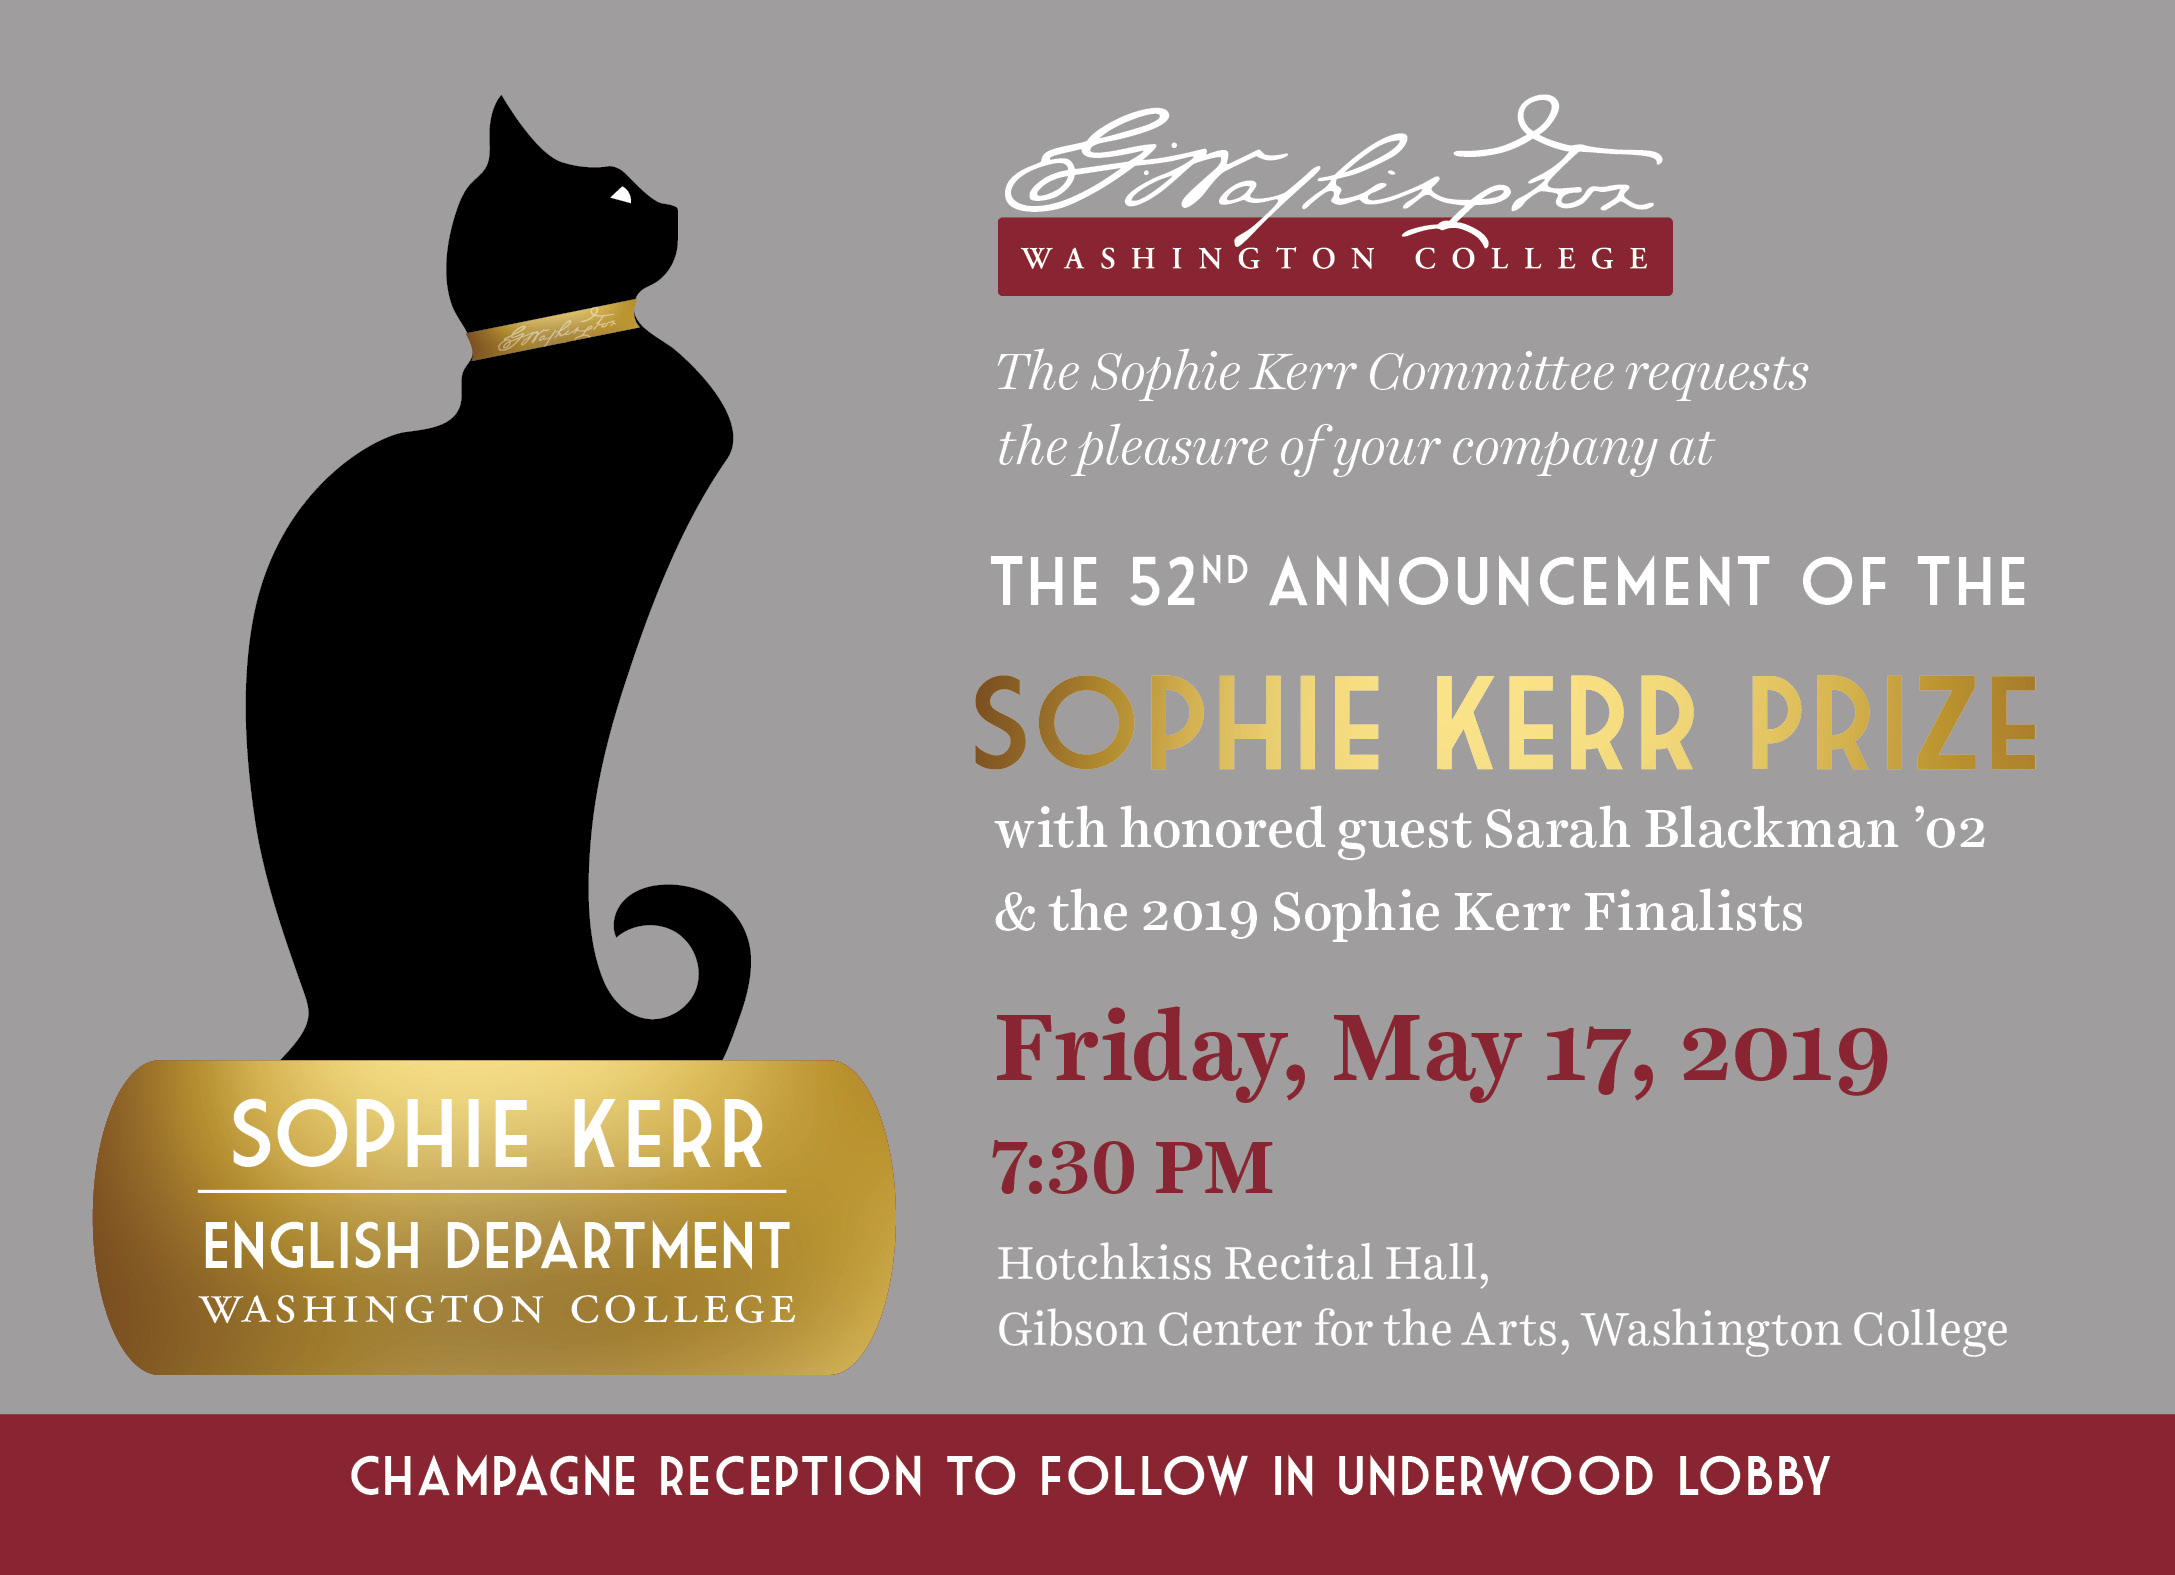 The 52nd Announcement of the Sophie Kerr Prize